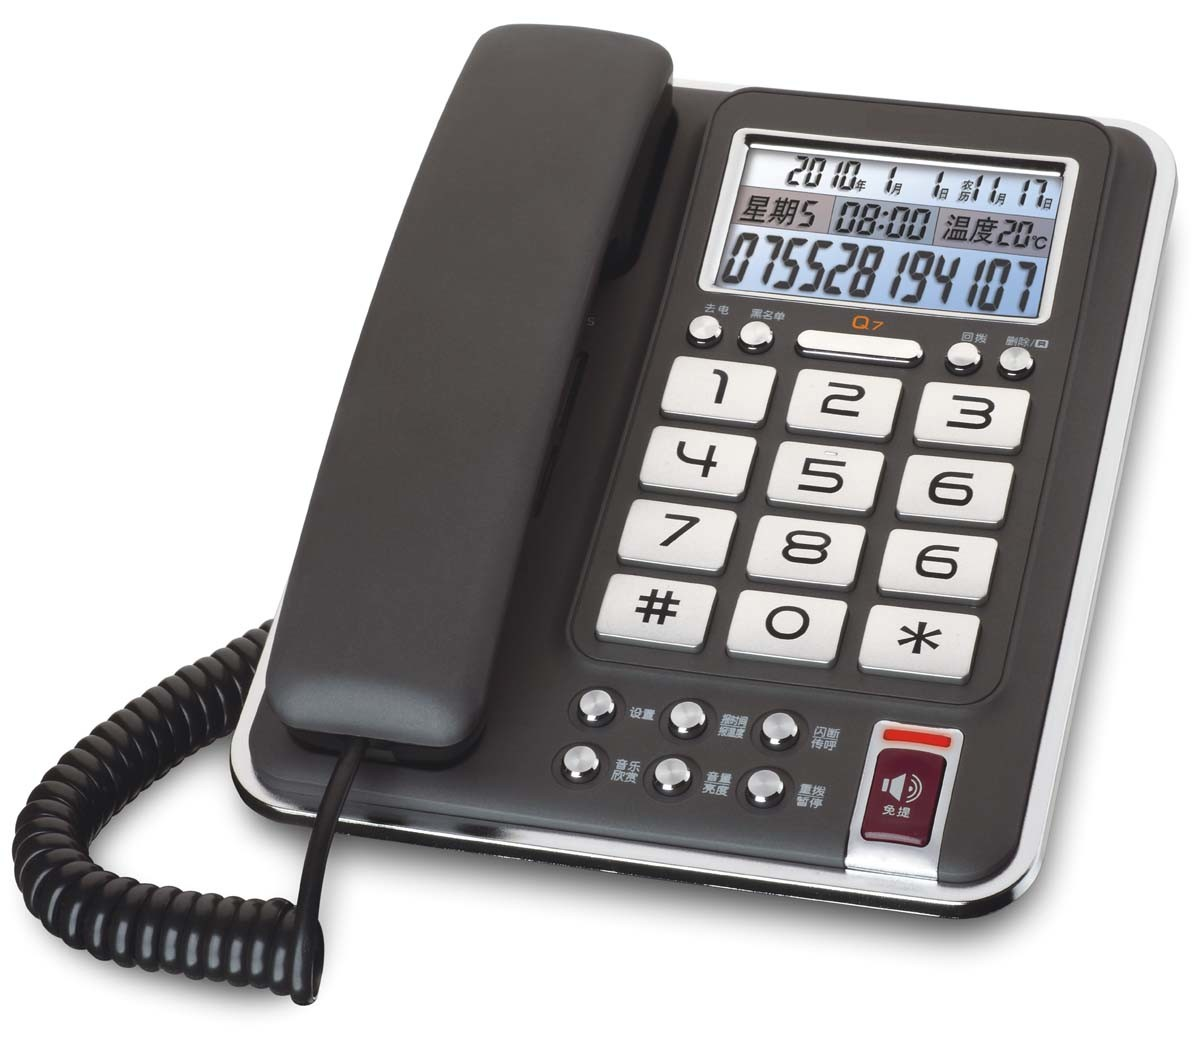 Big Button, Speaker Phone, Caller ID Telephone, Jumbo Key Phone